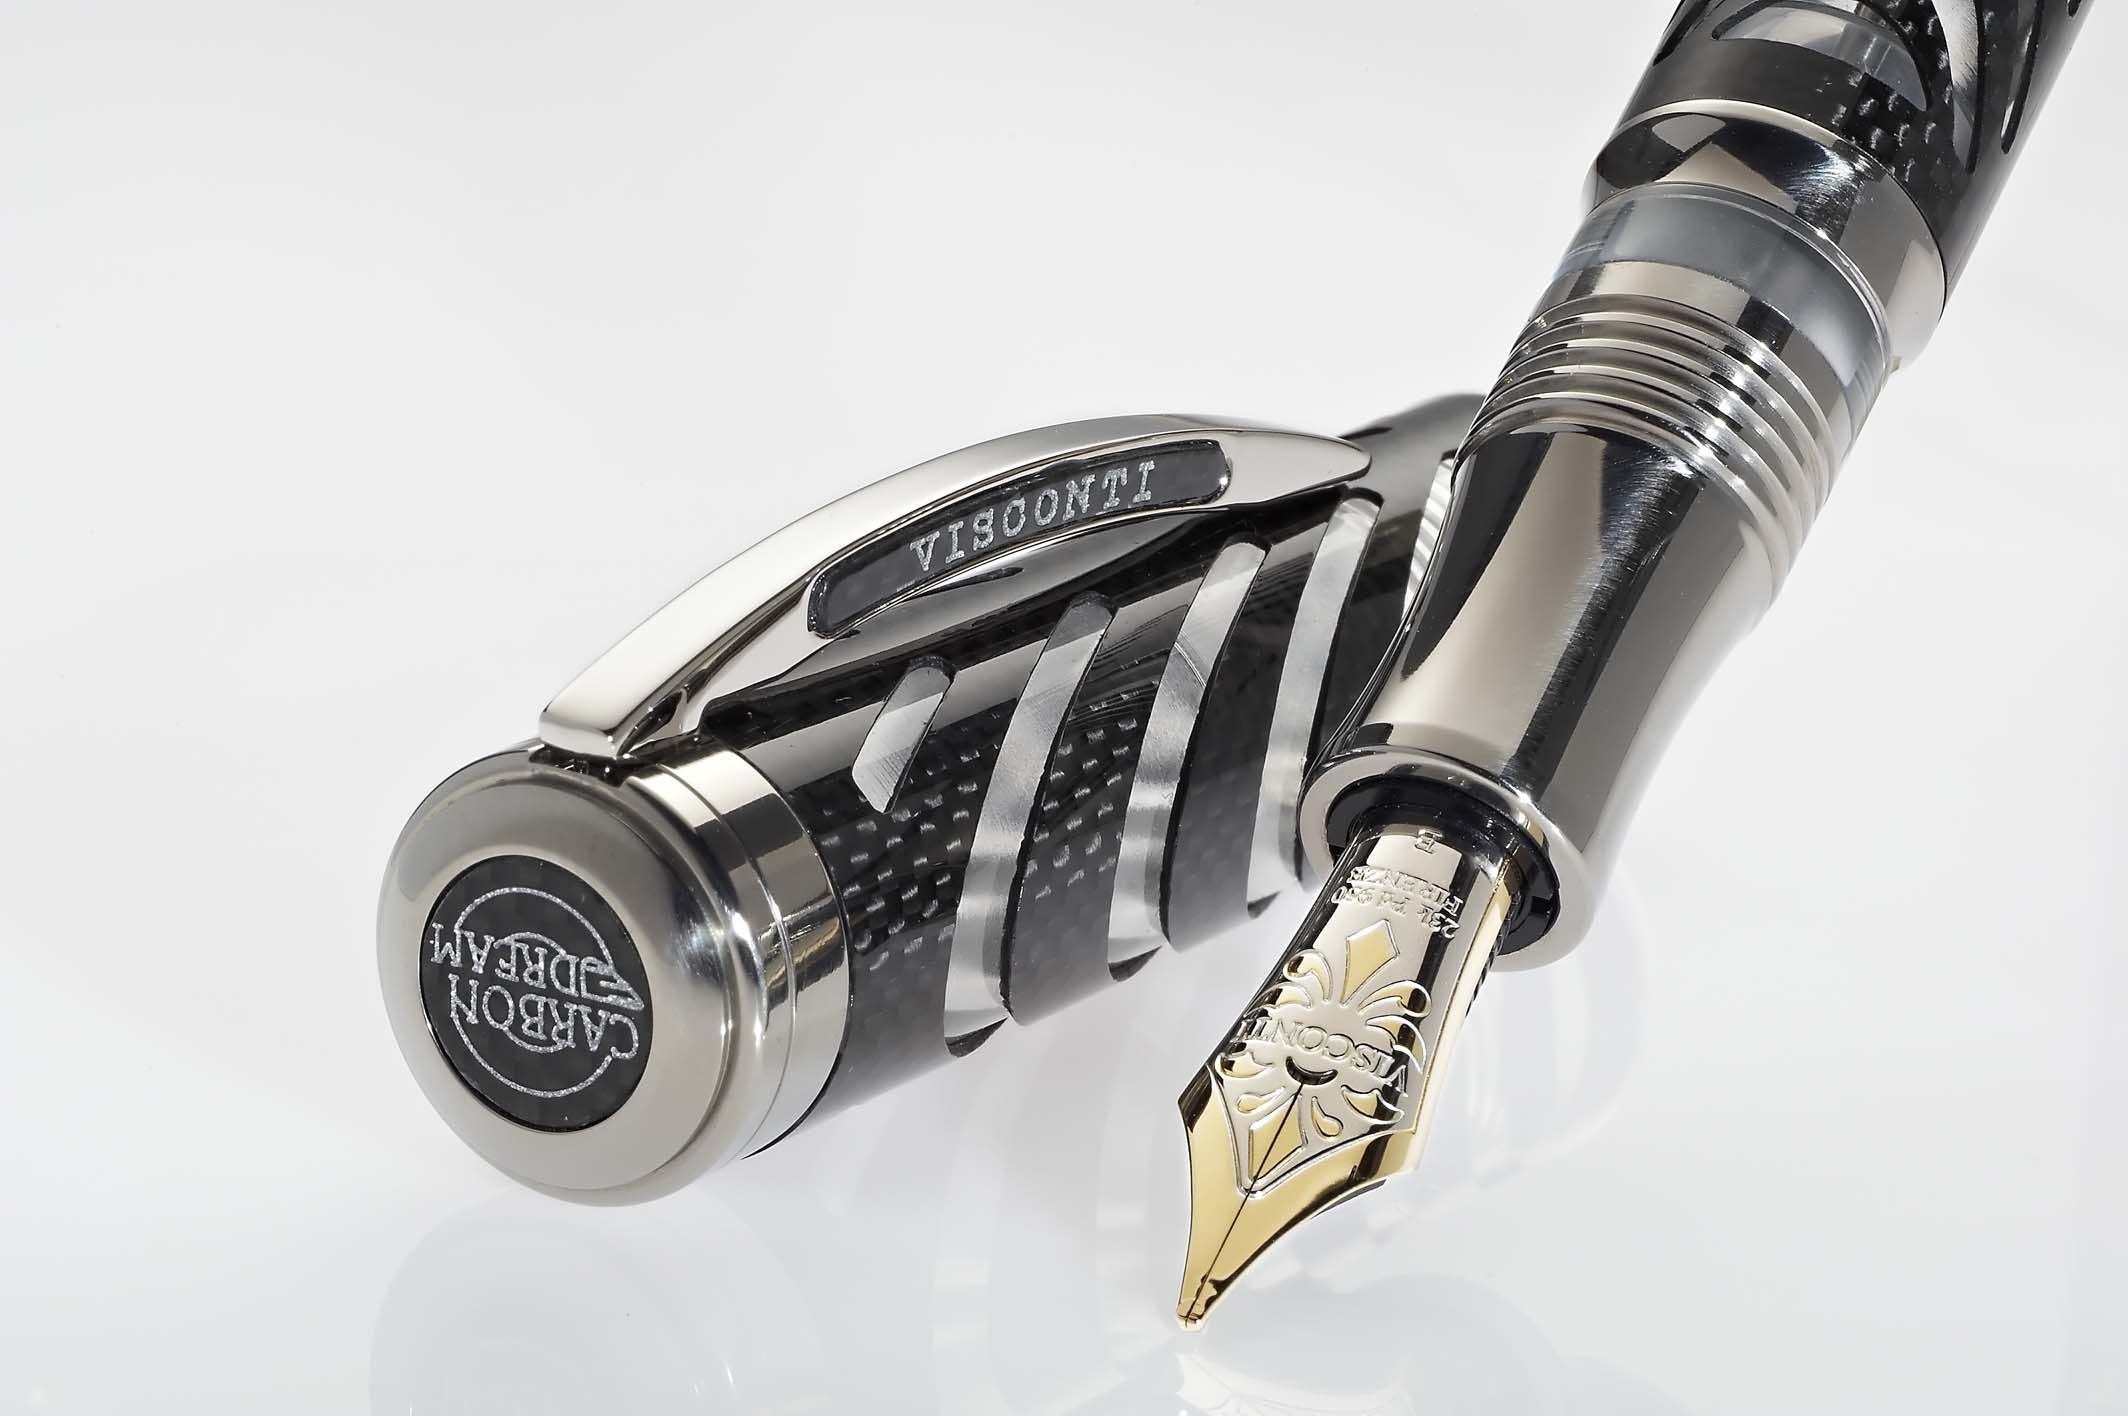 Carbon Dream is a fountain pen limited edition to 993 units. It represents a milestone in carbon fibre workmanship – for the first time in pen history the fine carbon weaving has been cut into the characteristic design of the Ripple - Visconti manufacturing icon.